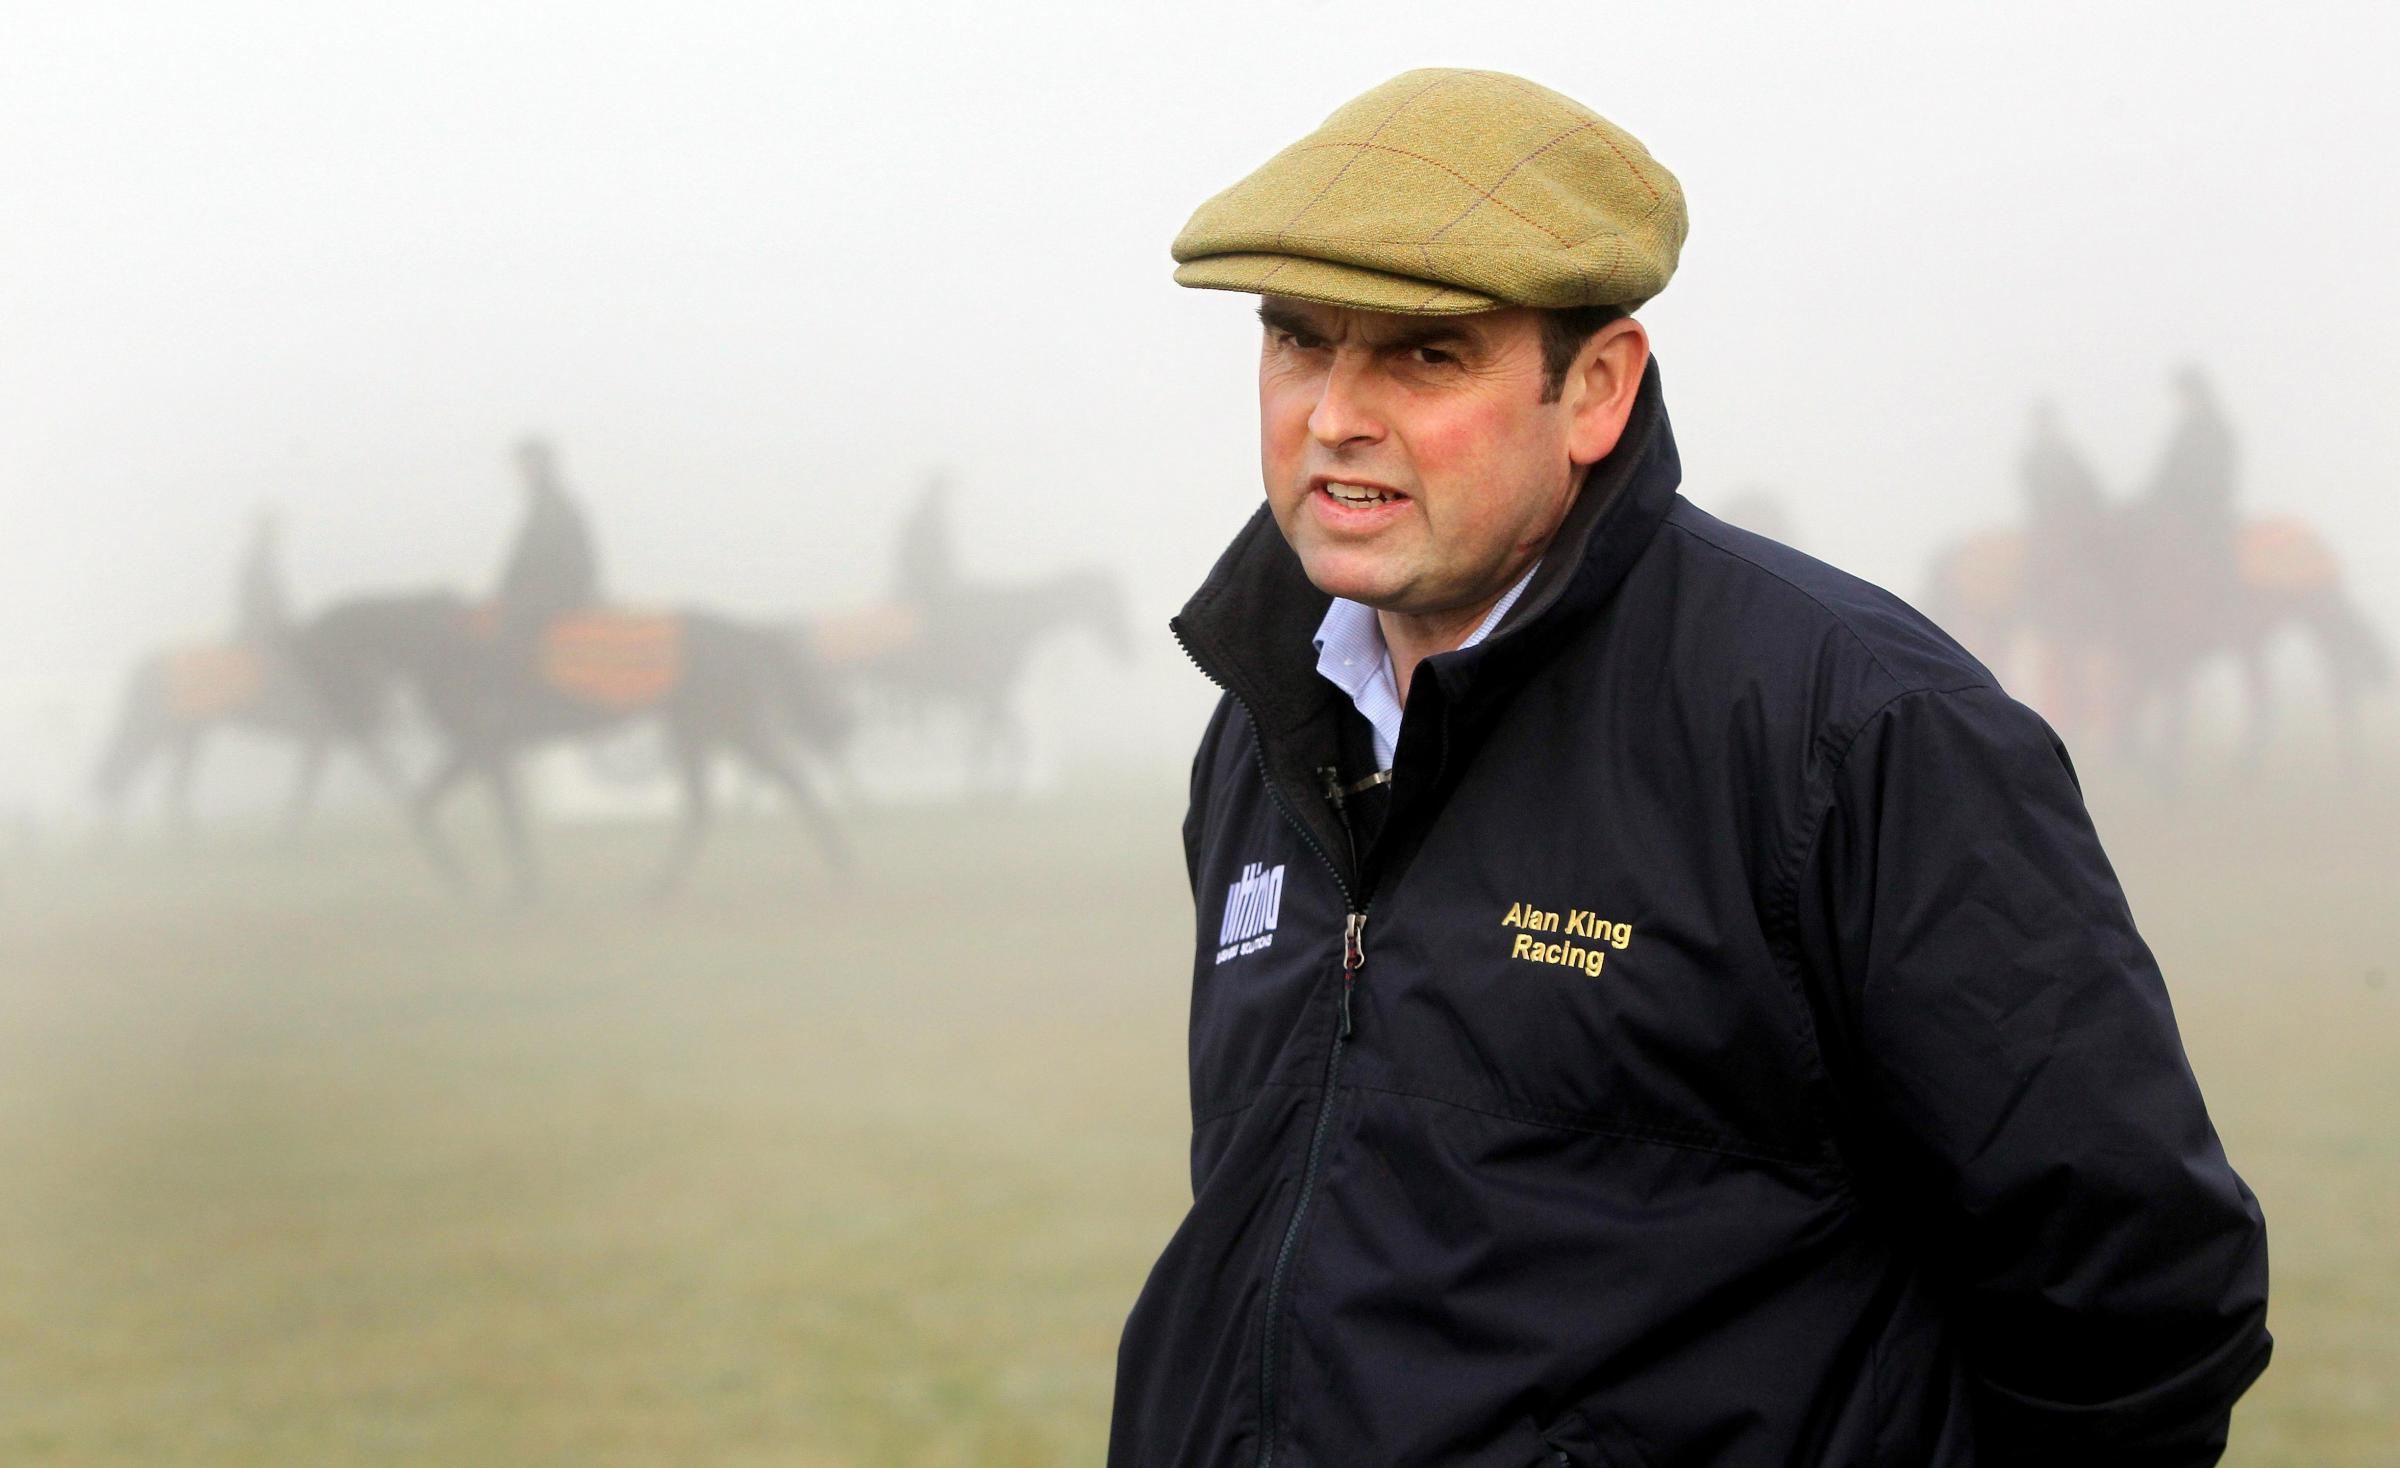 Trainer Alan King's Top Tug is tipped for success at Doncaster     Picture: David Davies/PA Wire.